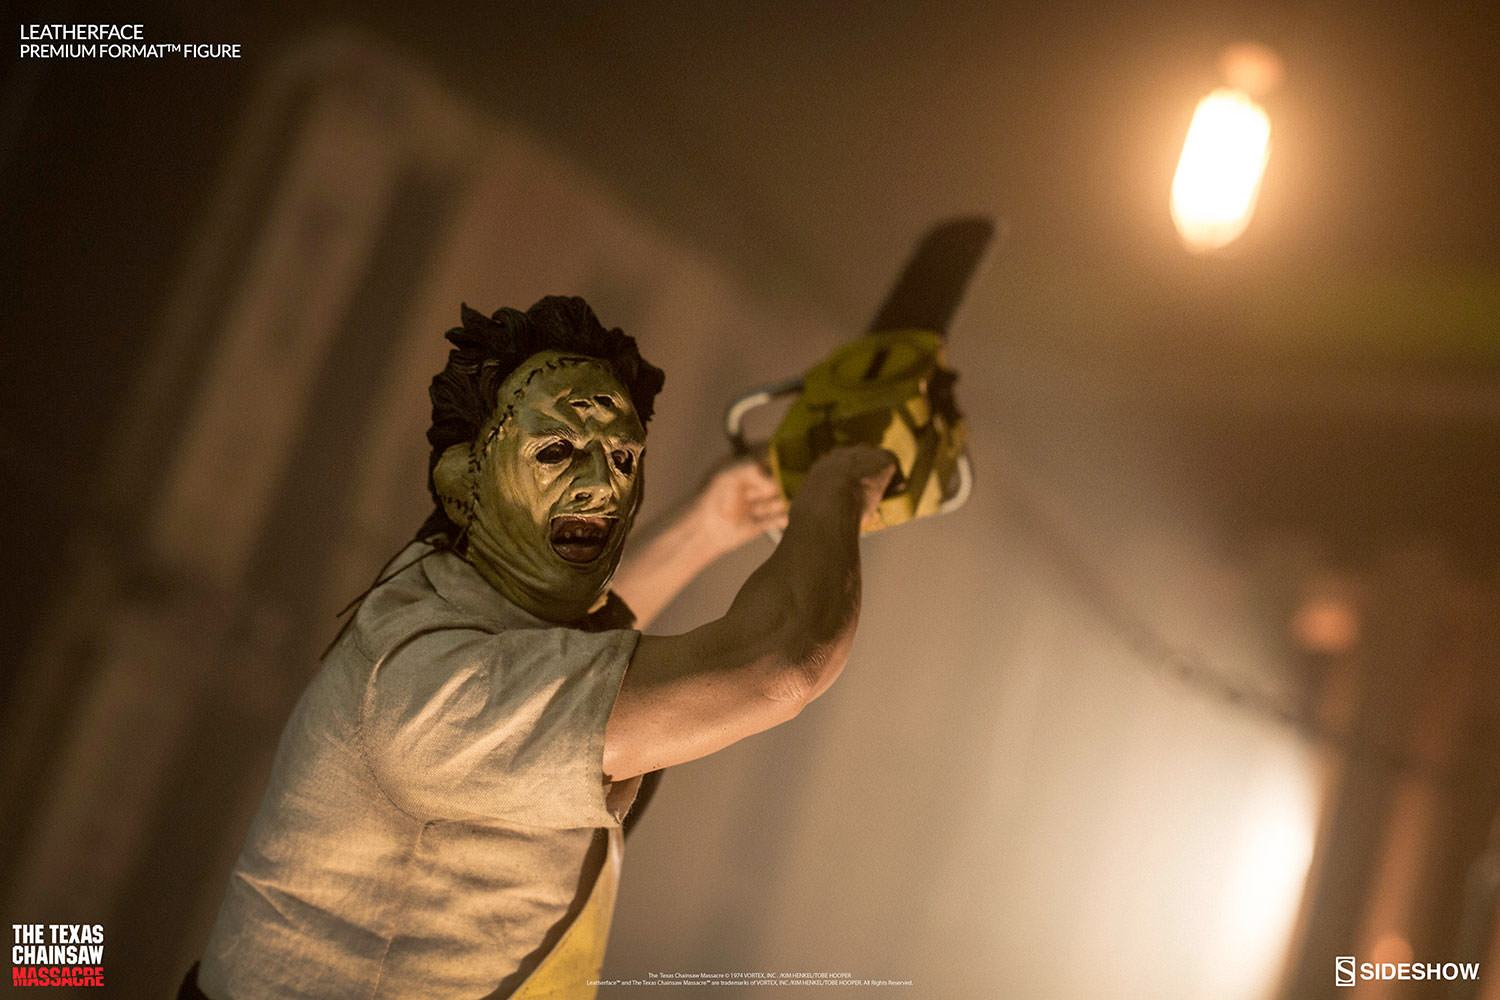 estatua-leatherface-texas-chainsaw-massacre-premium-format-figure-15